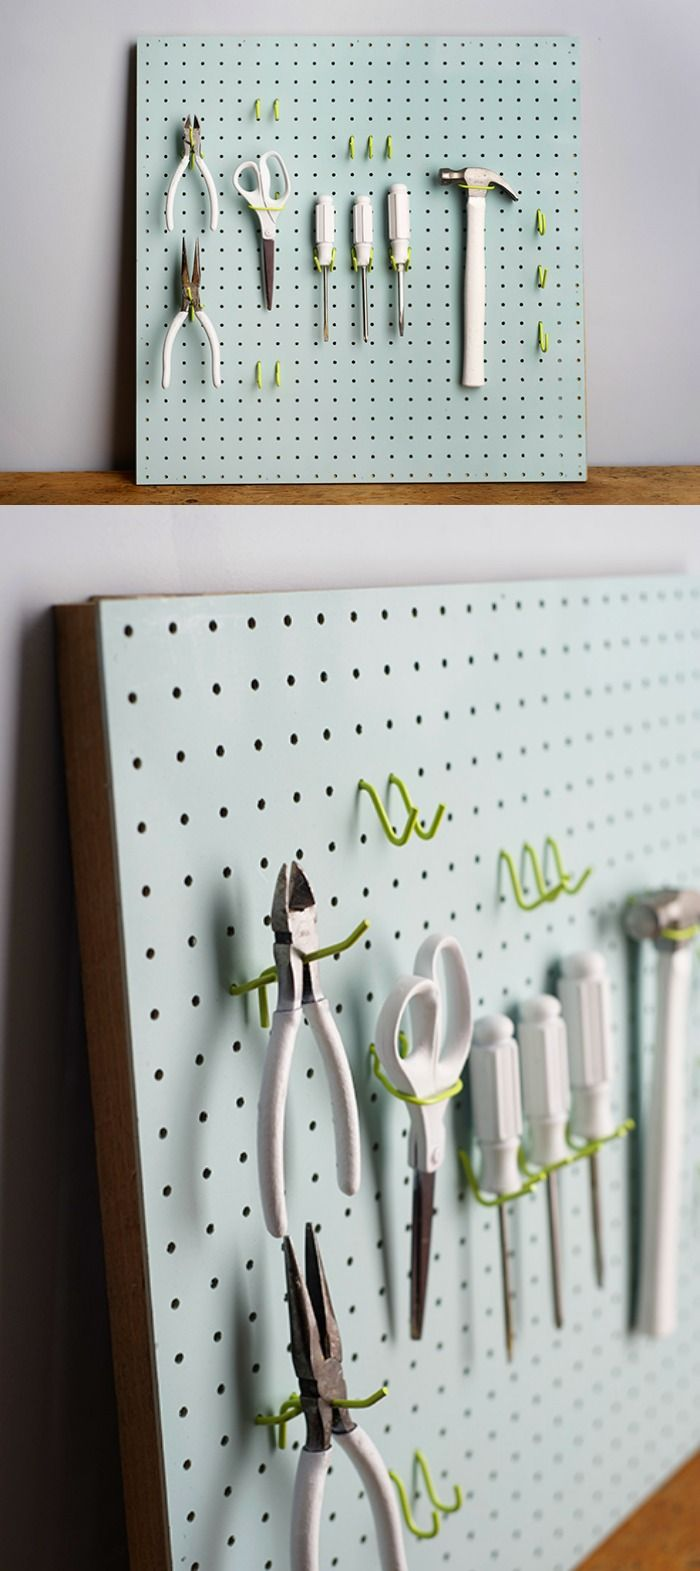 Painted pegboard - just because you can. I love this color combination! This would be fun for my craft studio.